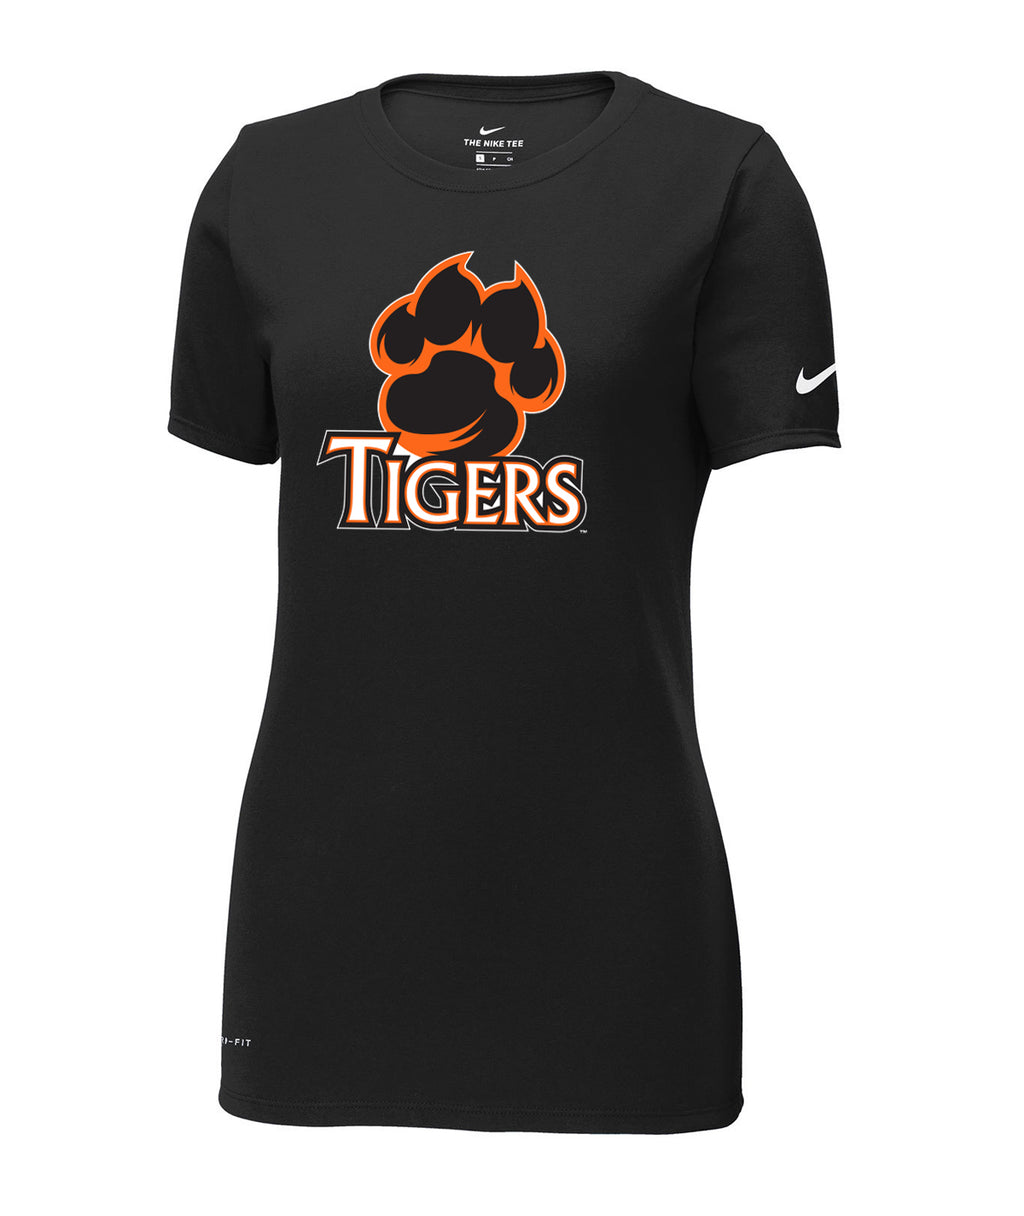 Tigers Womens Nike Dri-Fit Performance Scoop Neck Tee